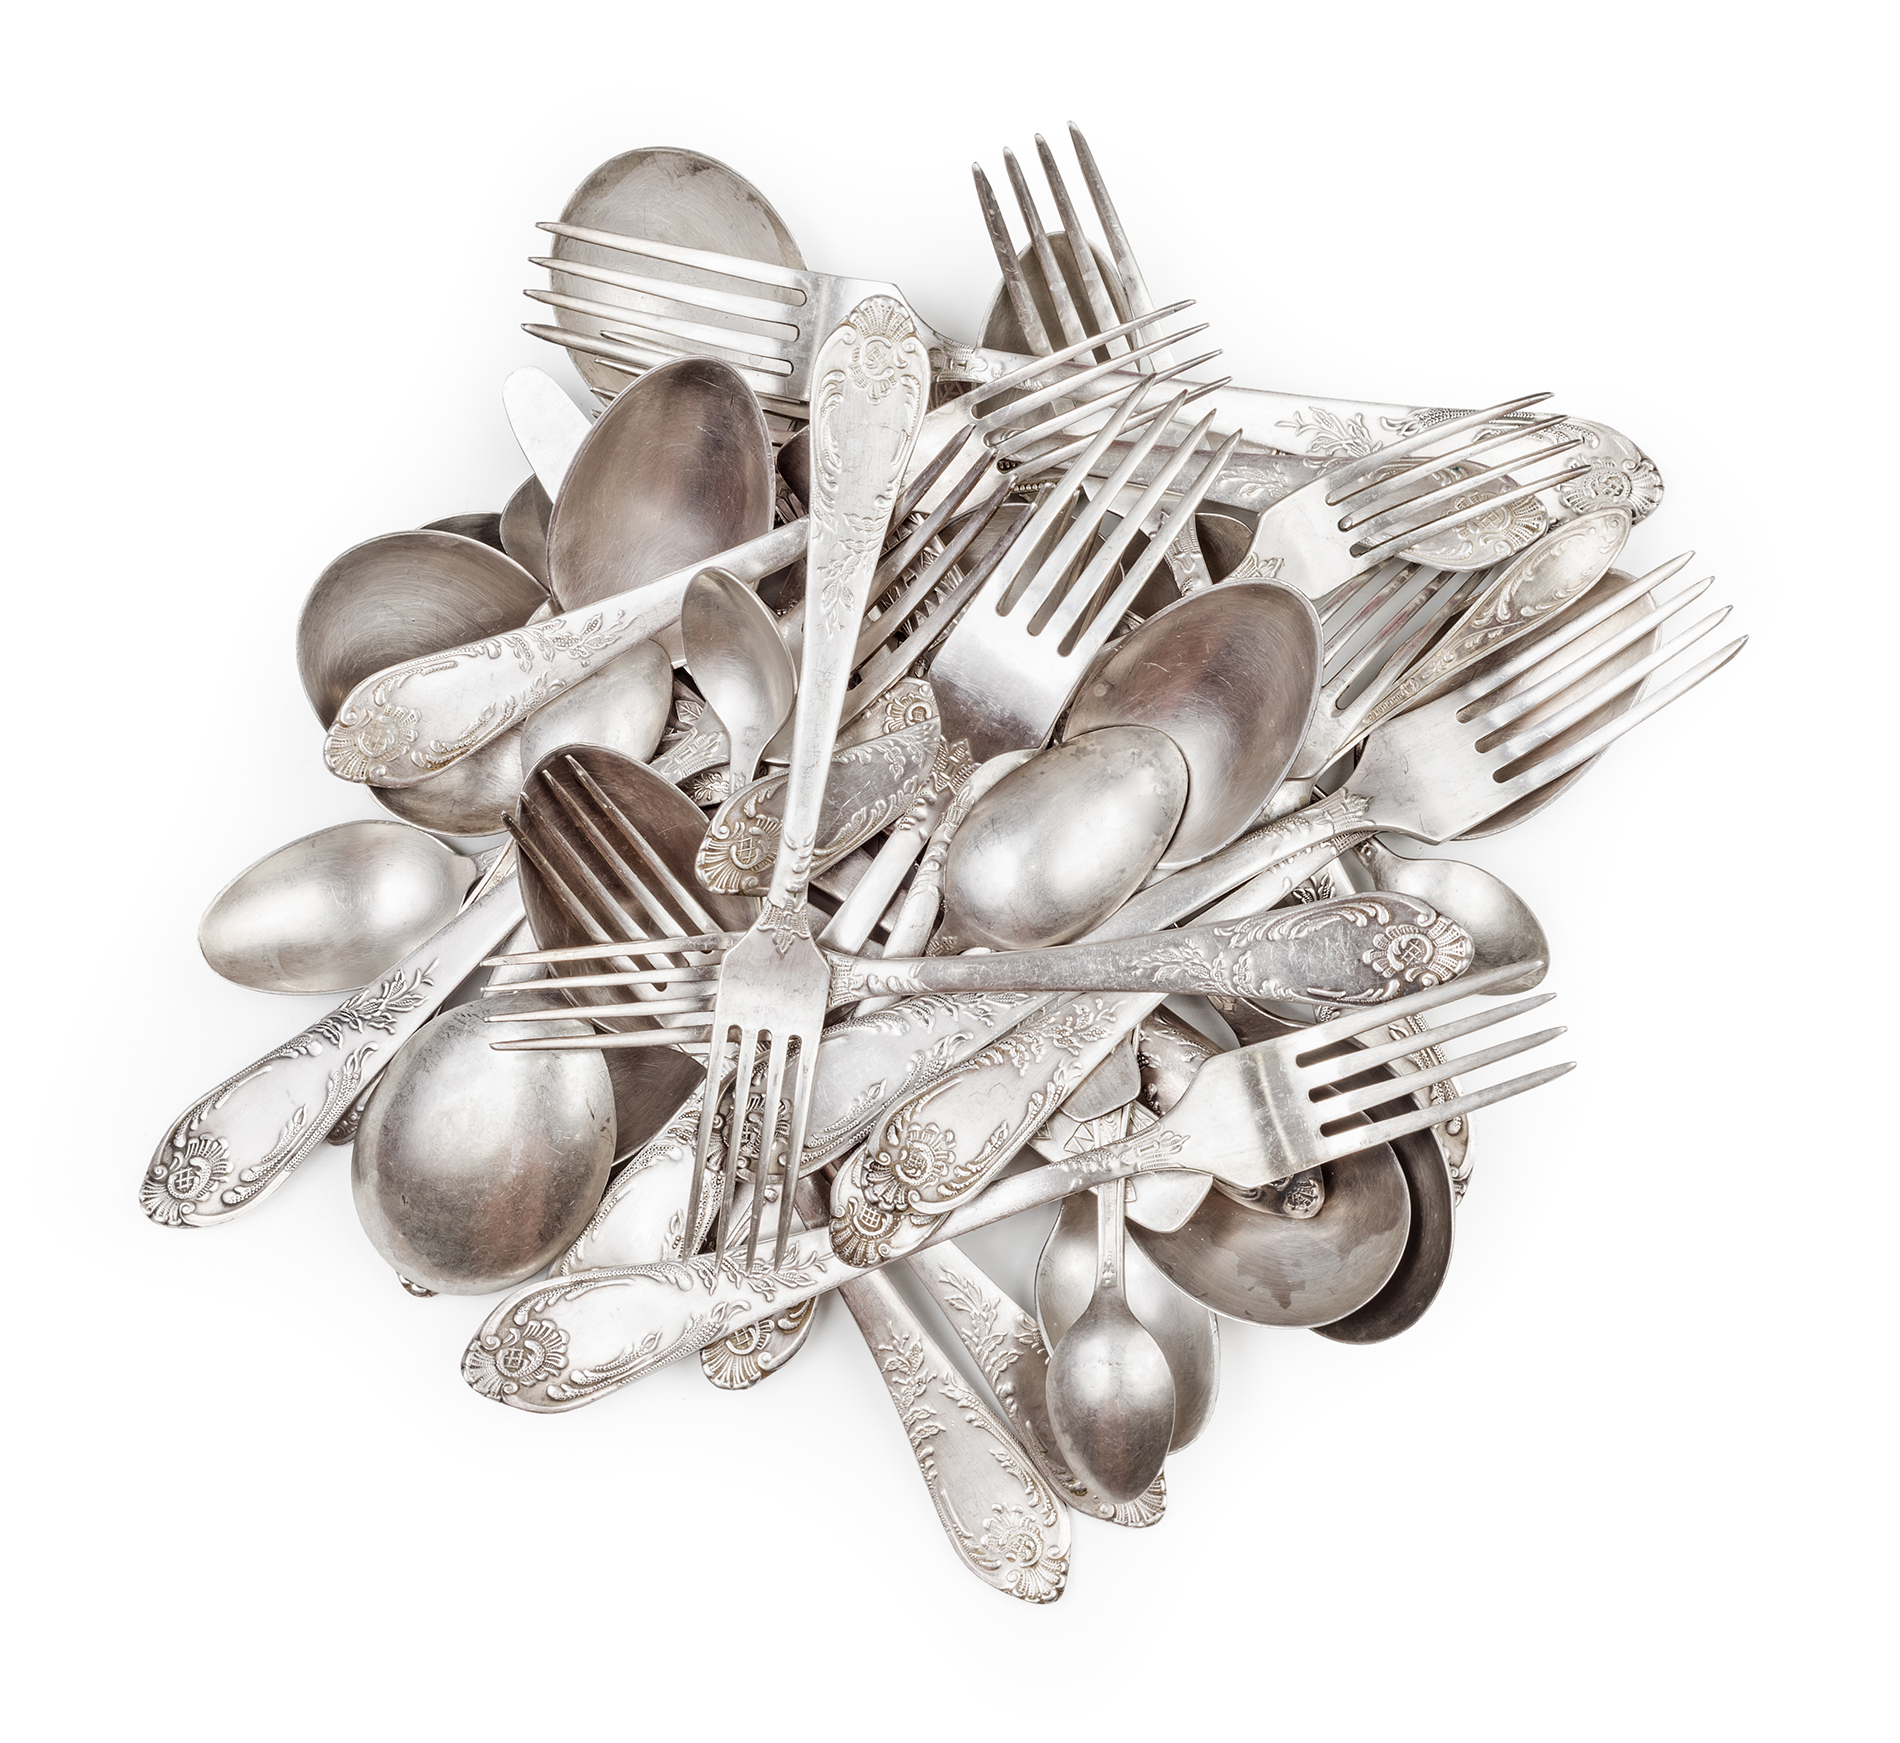 a messy pile of silver cutlery including forks, knives and spoons